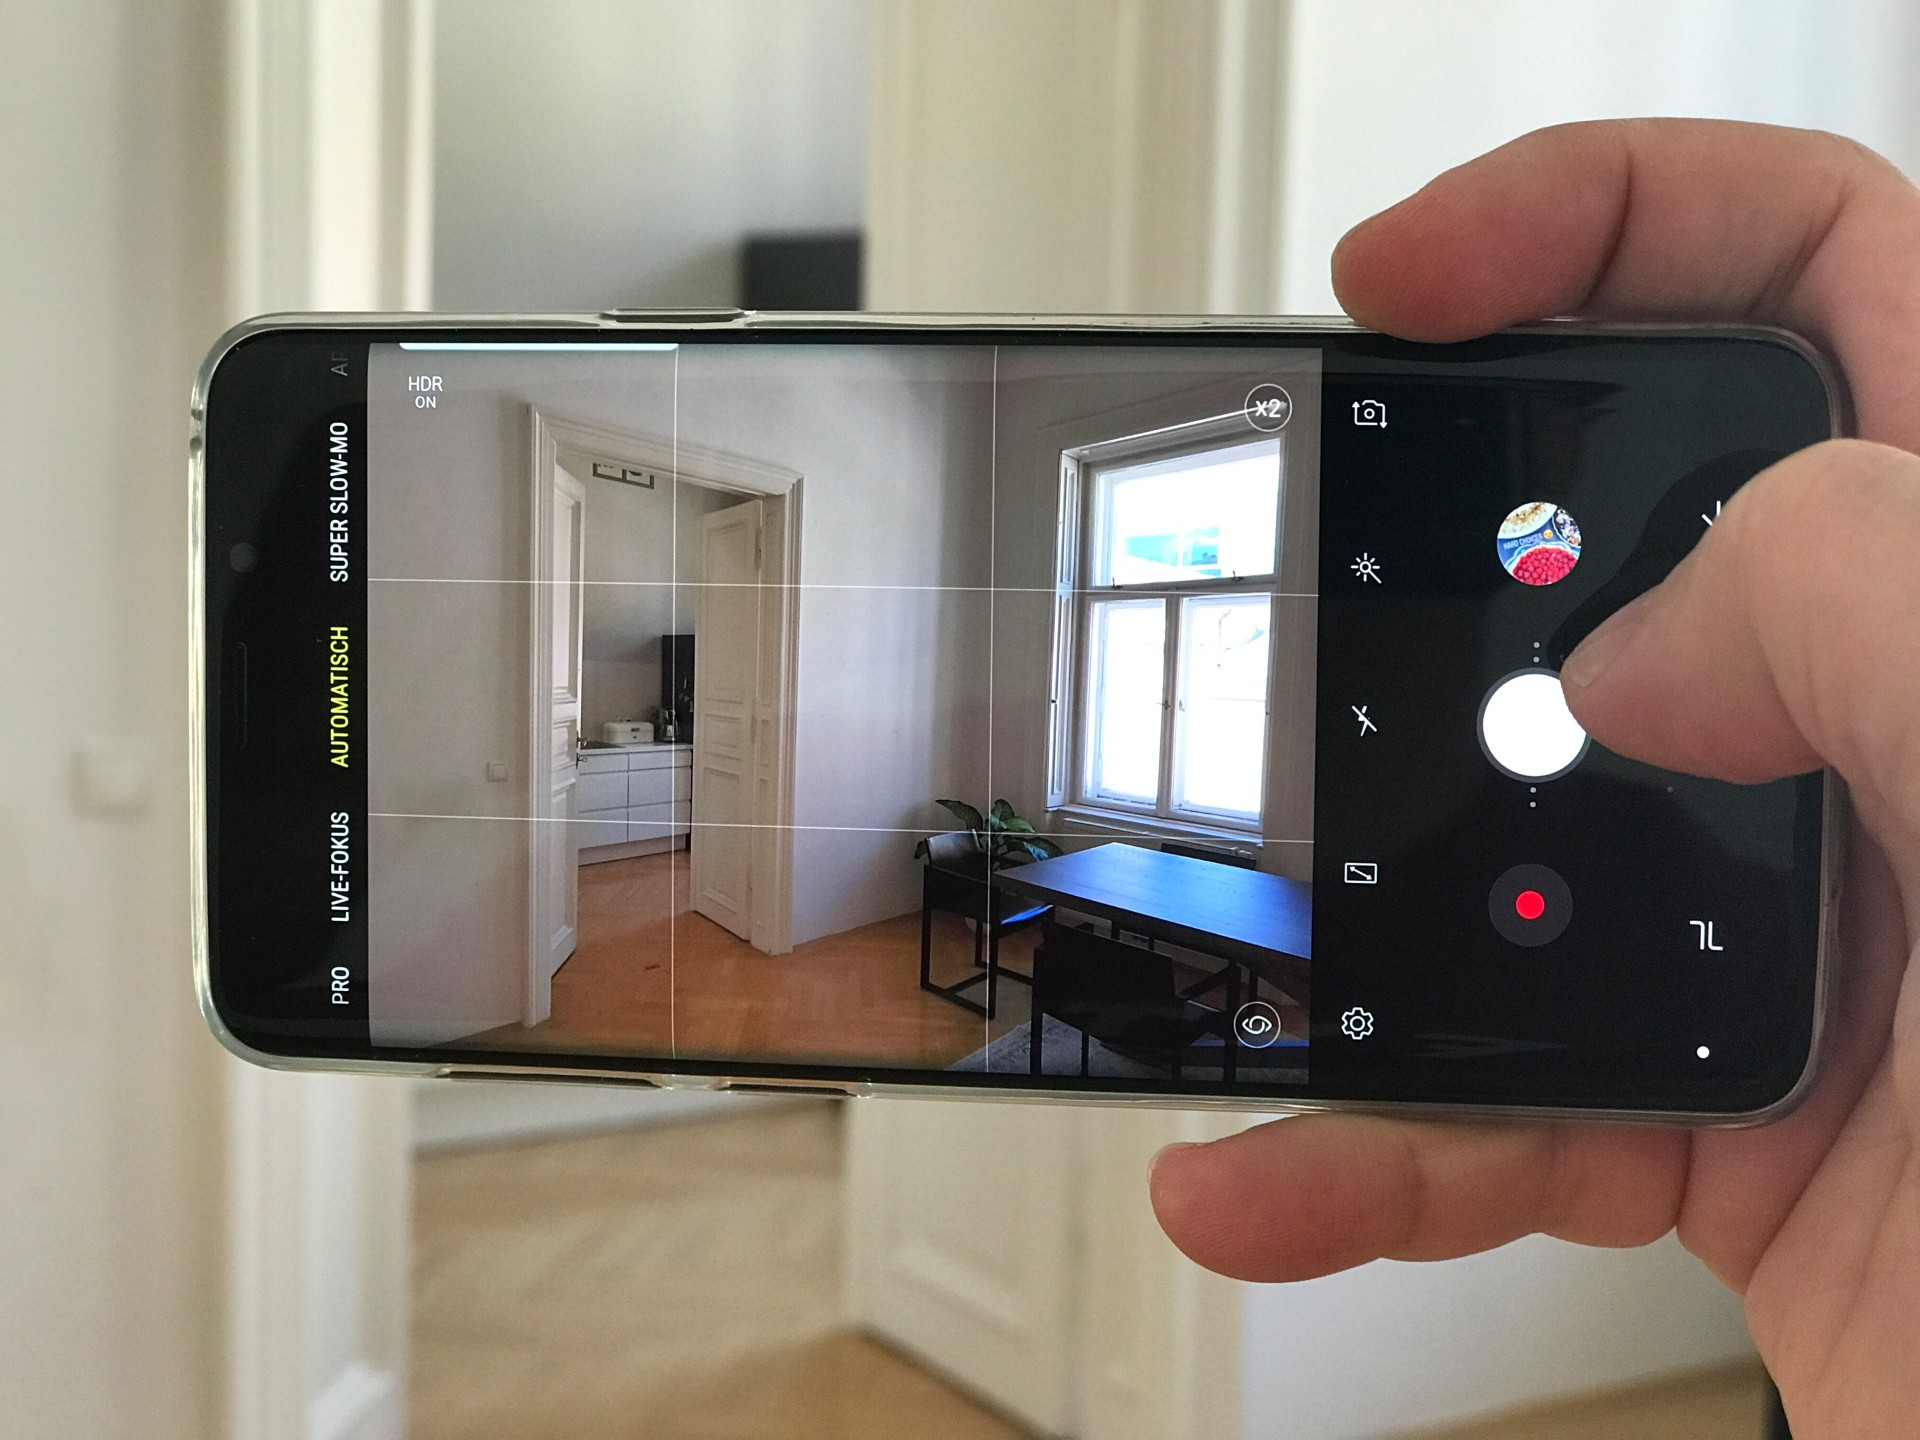 Top Samsung Galaxy S9 Camera Tips and Tricks - The Vienna BLOG